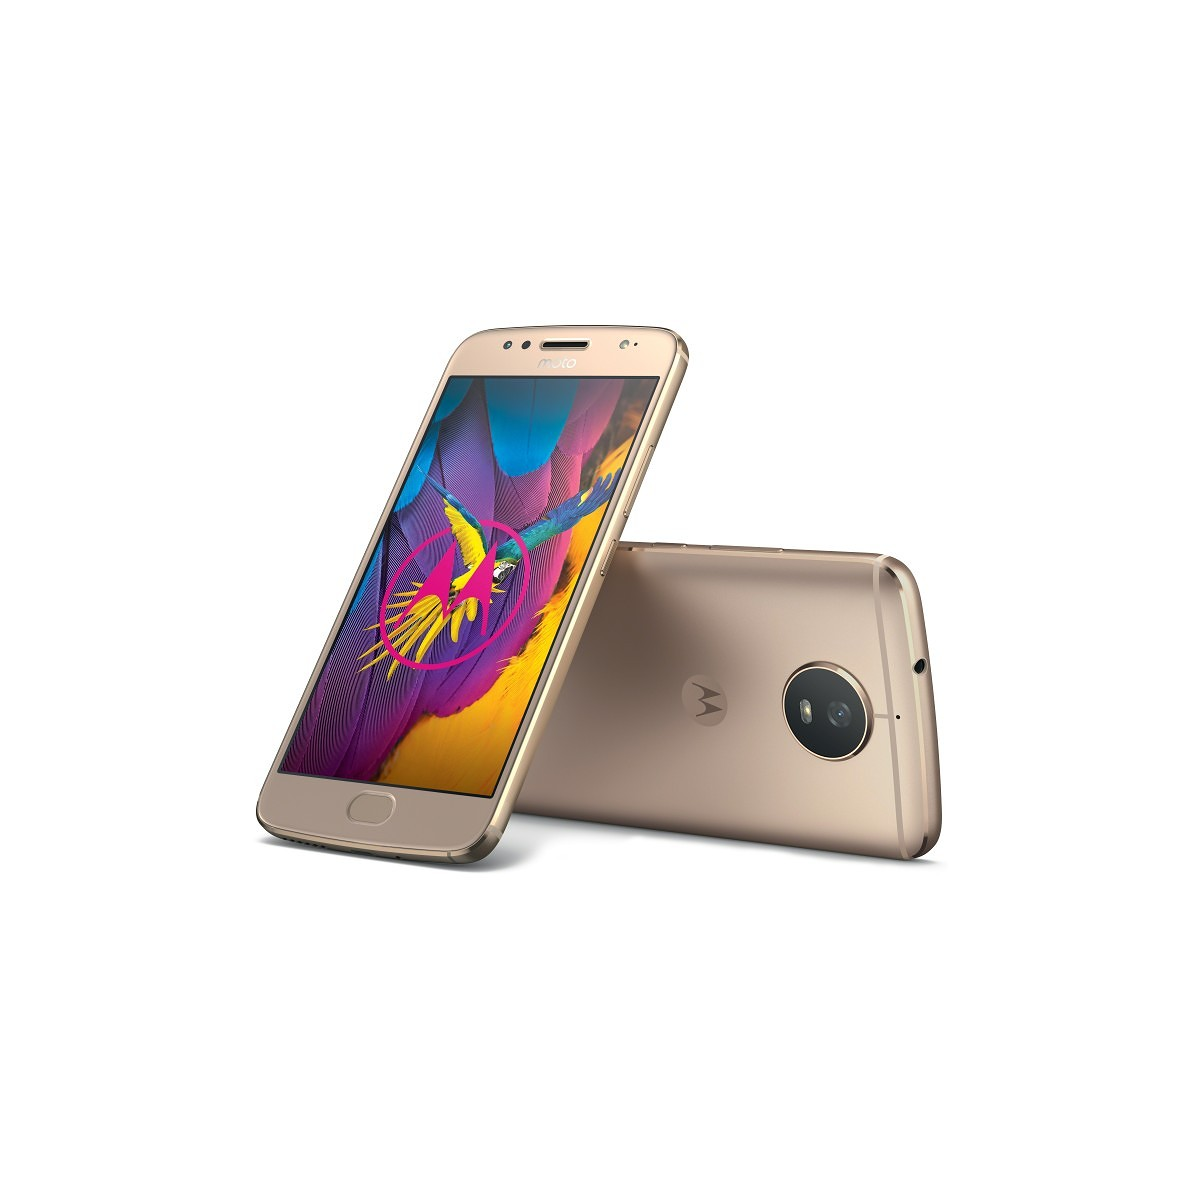 Moto G5S & Moto G5S Plus Are Now Official, Offer Improved Cameras